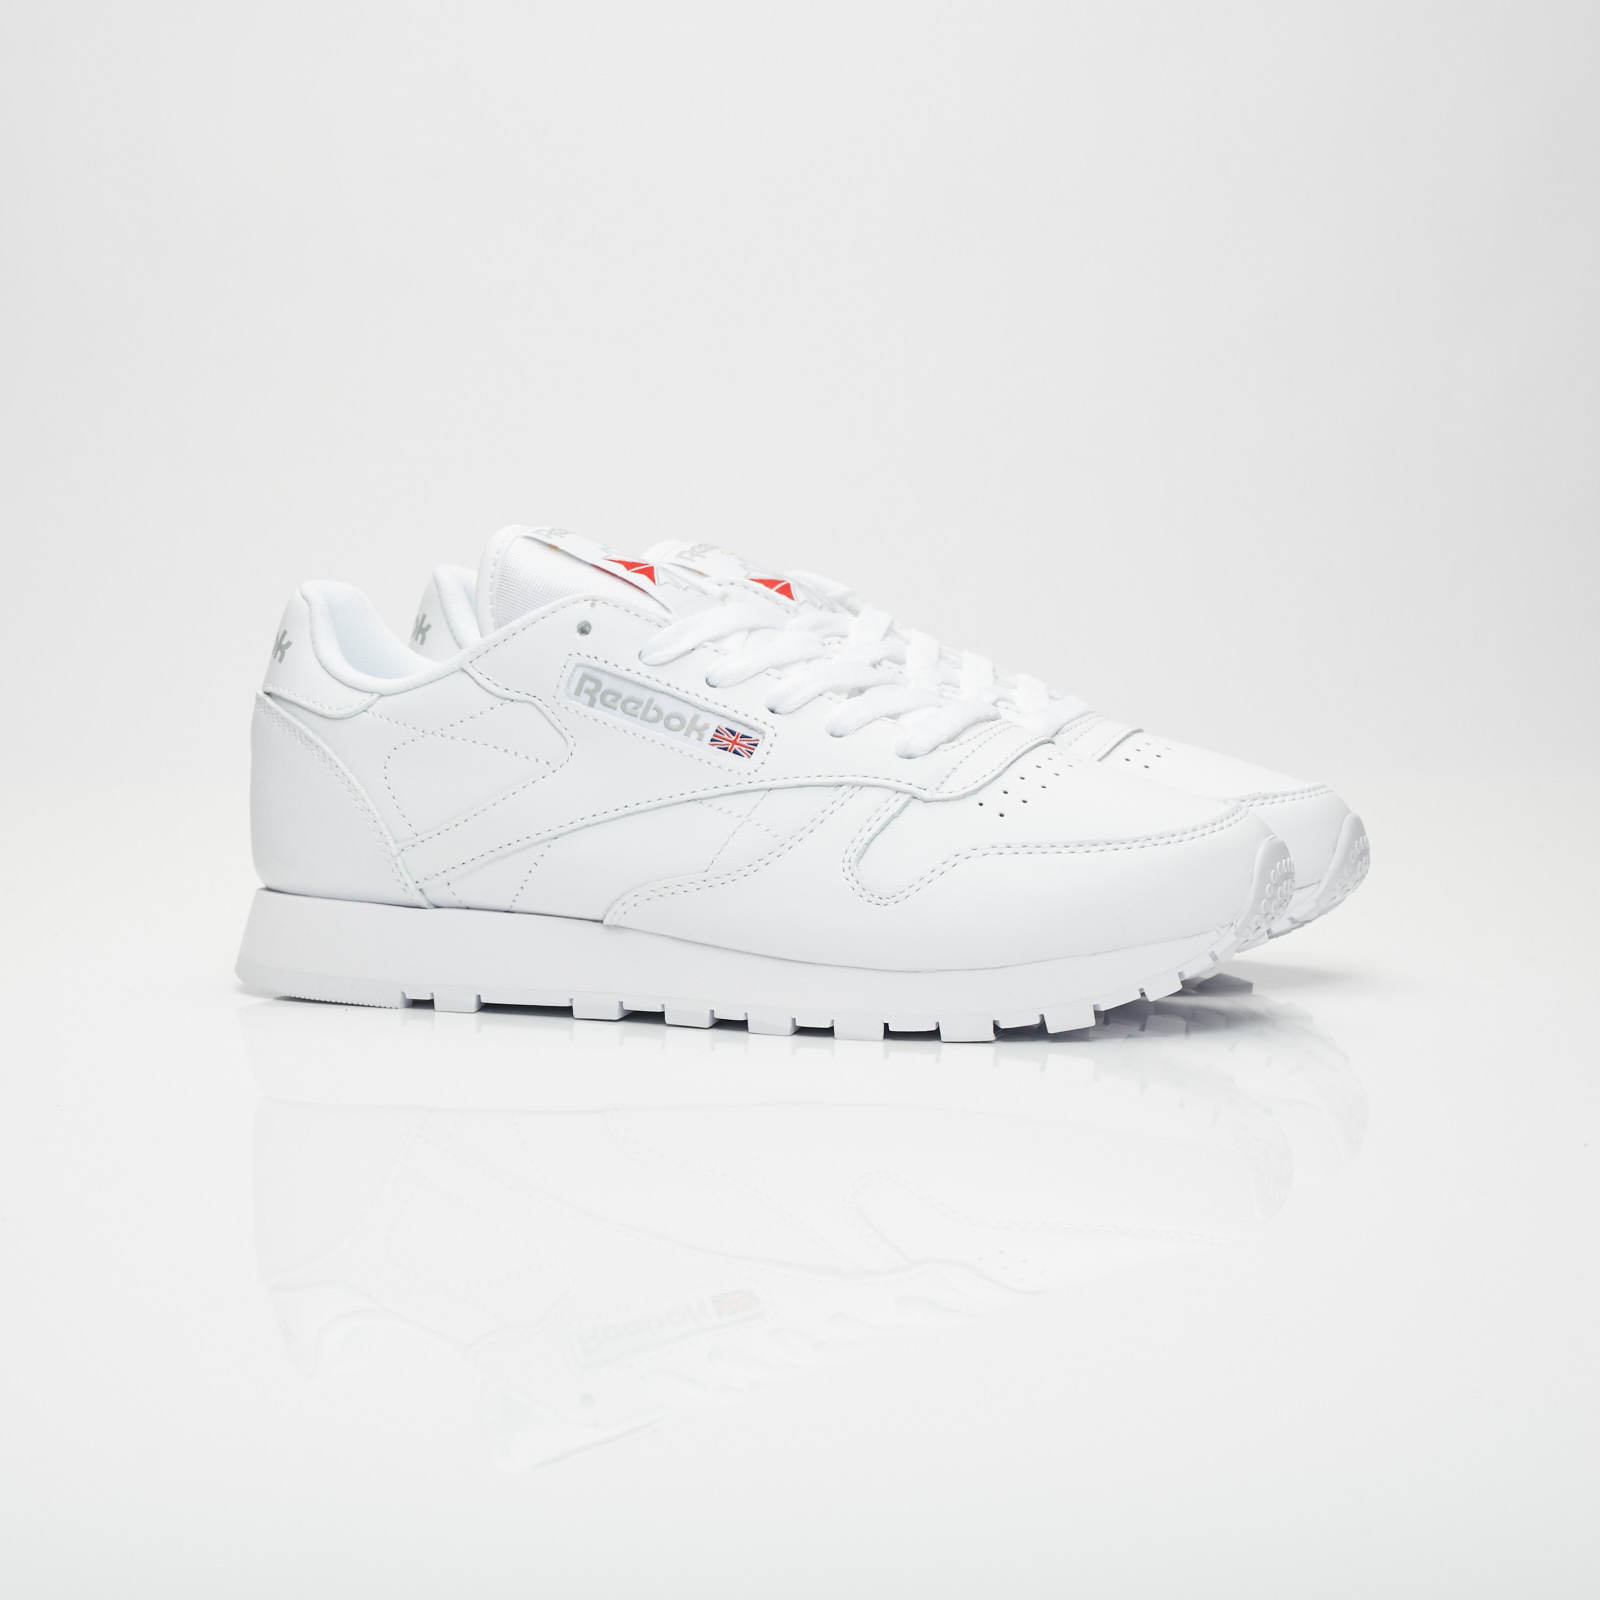 2cc1af59608 Reebok Classic Leather - 2232 - Sneakersnstuff | sneakers ...